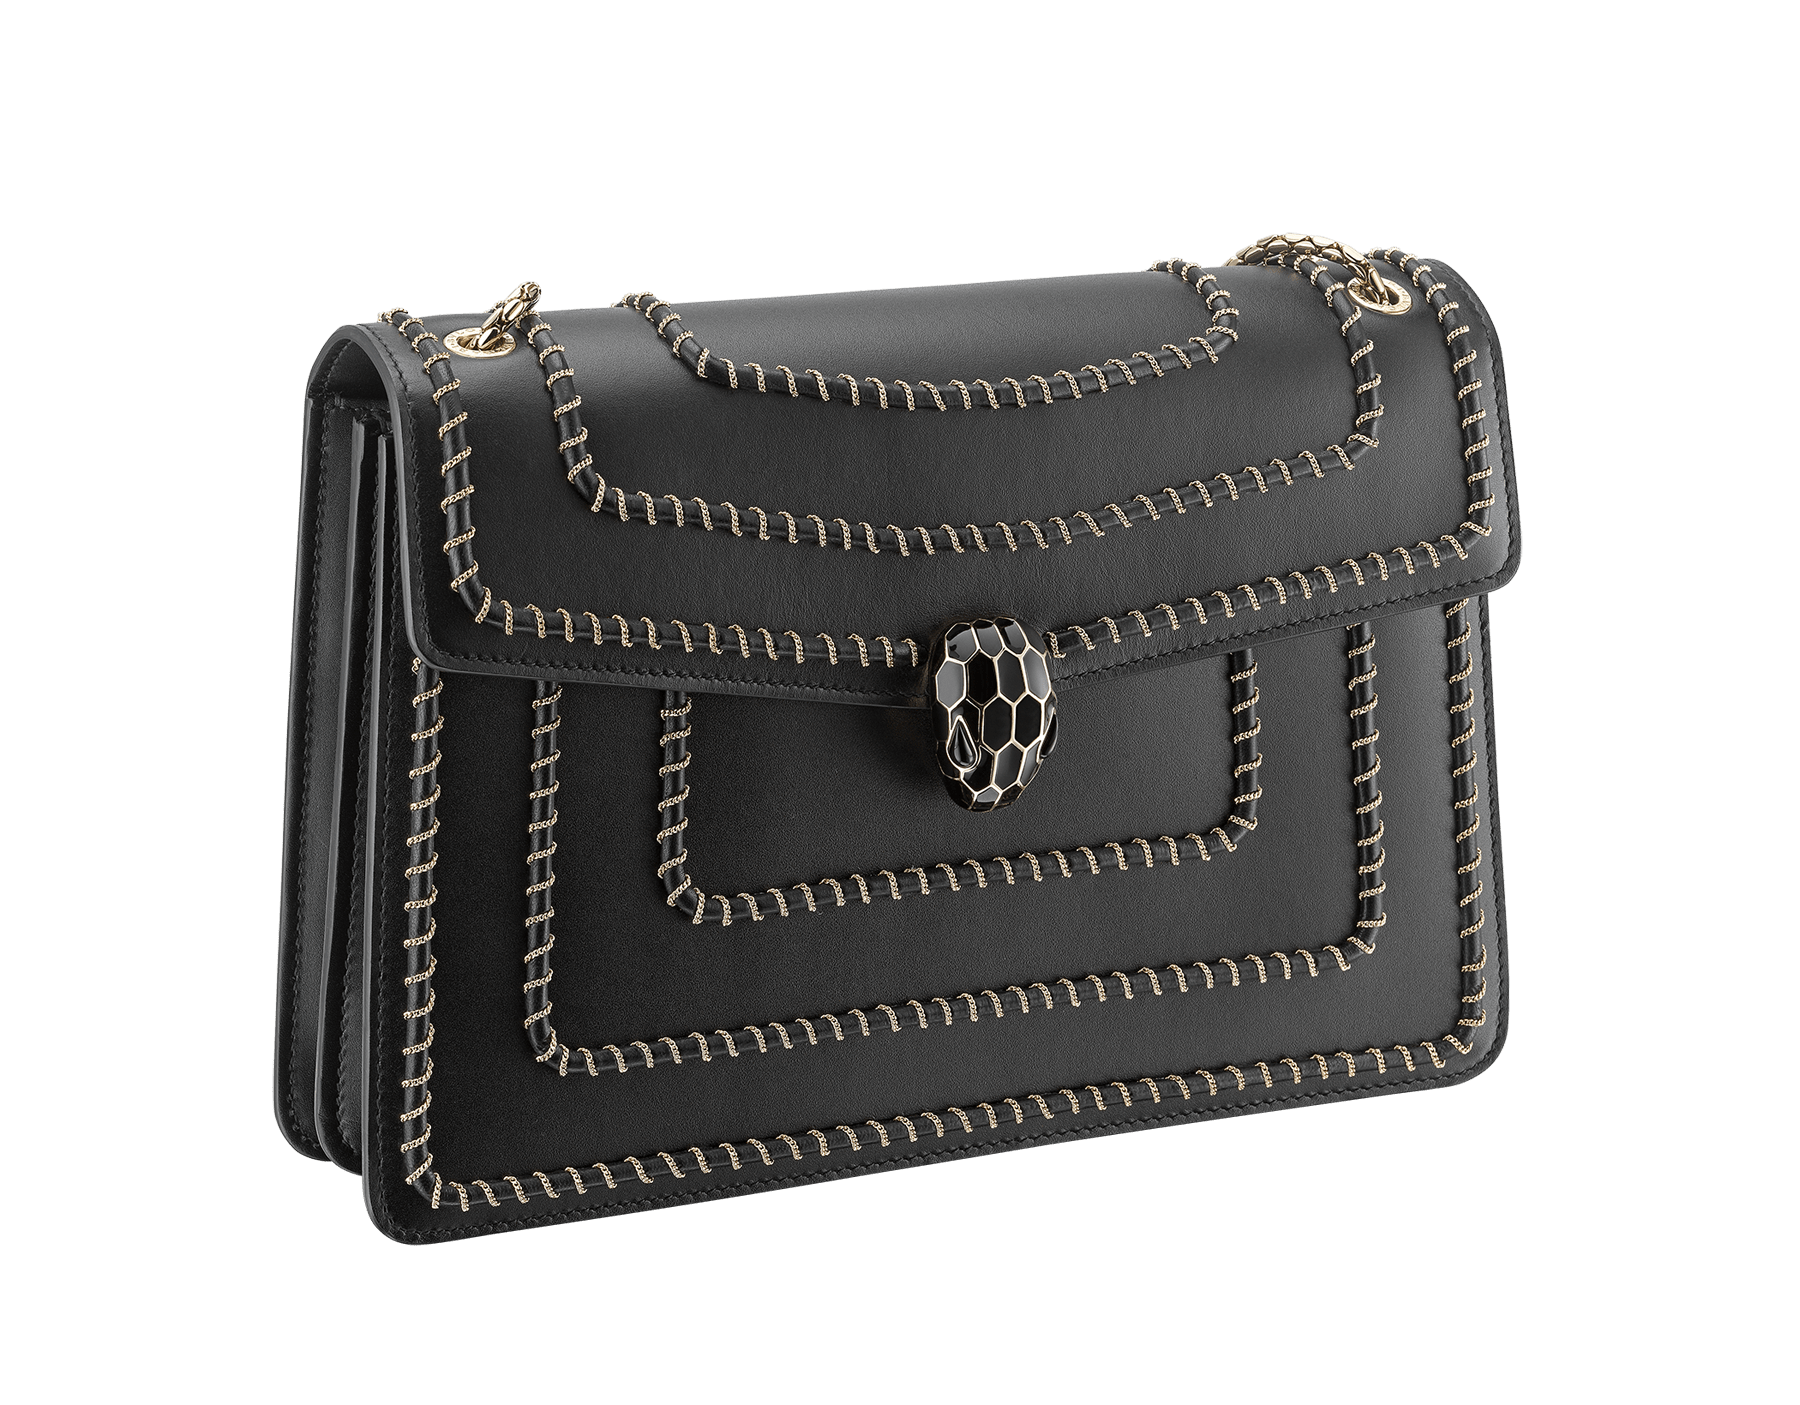 """Serpenti Forever"" shoulder bag in black calf leather, featuring a Woven Chain motif. Iconic snakehead closure in light gold plated brass enriched with black enamel and black onyx eyes 521-WC image 2"